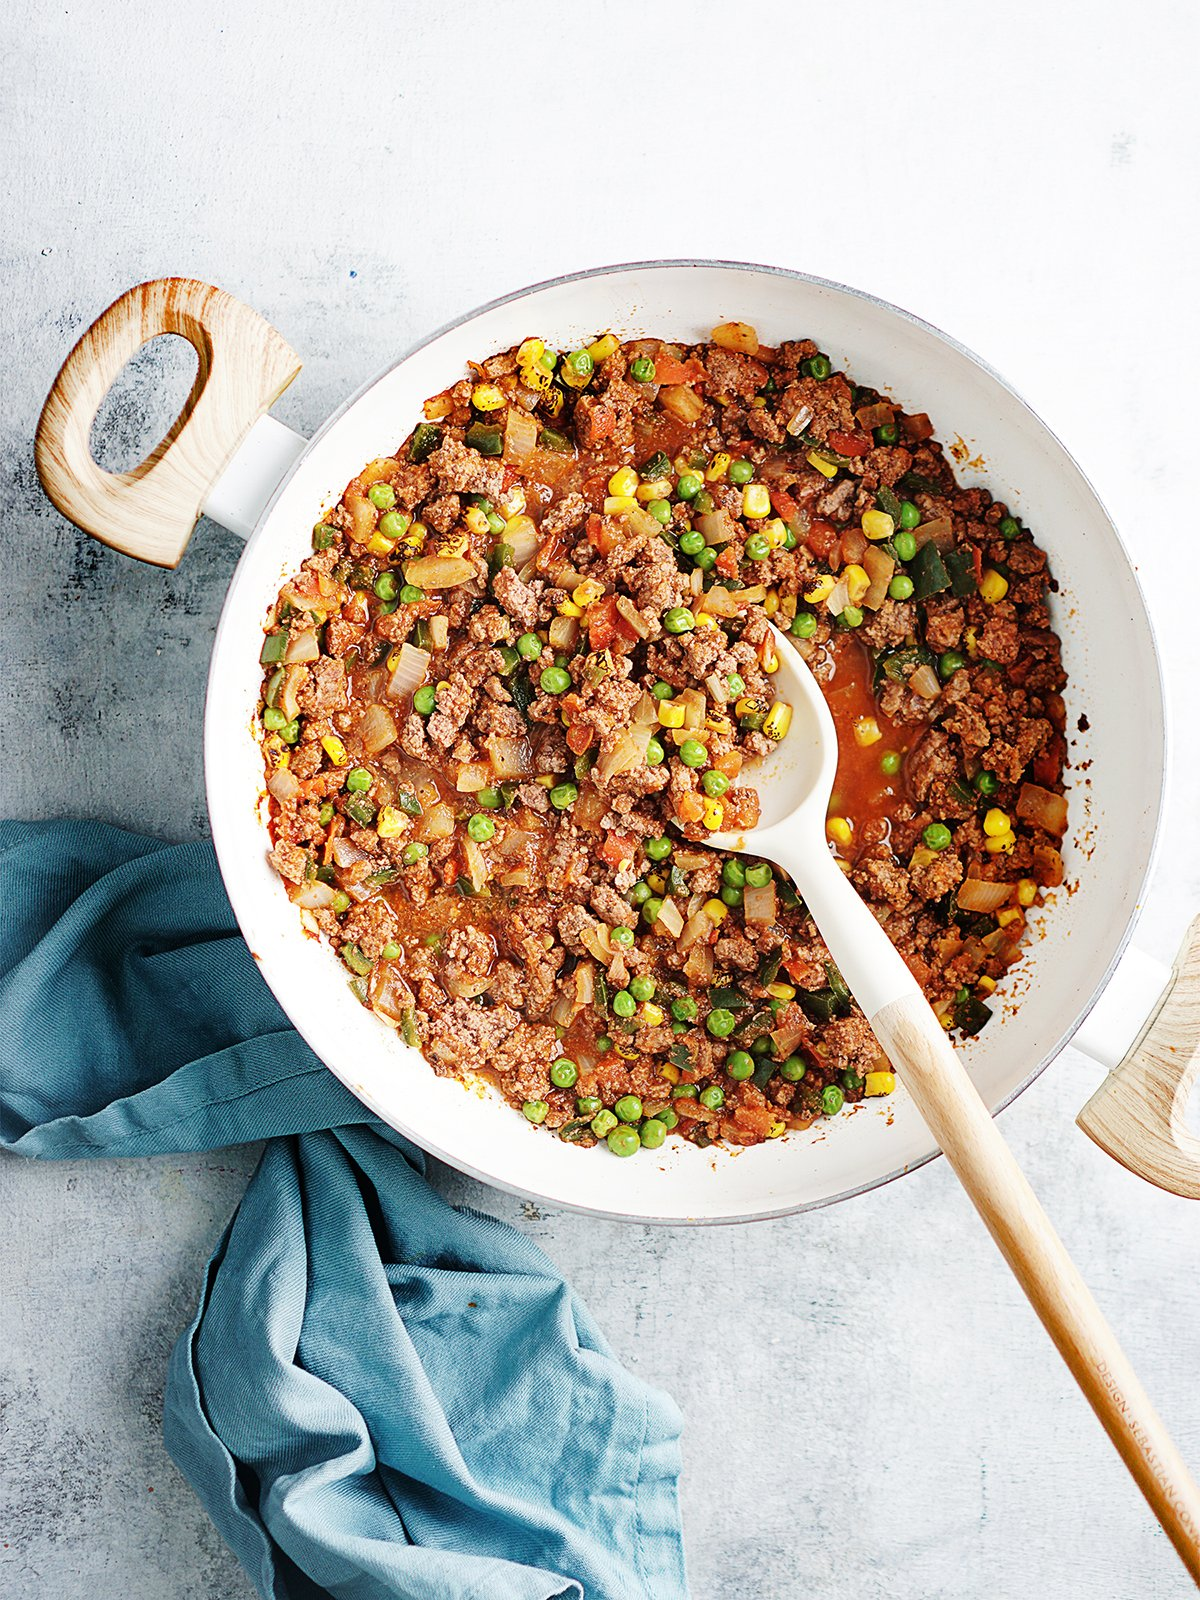 Large pan with picadillo on a blue board